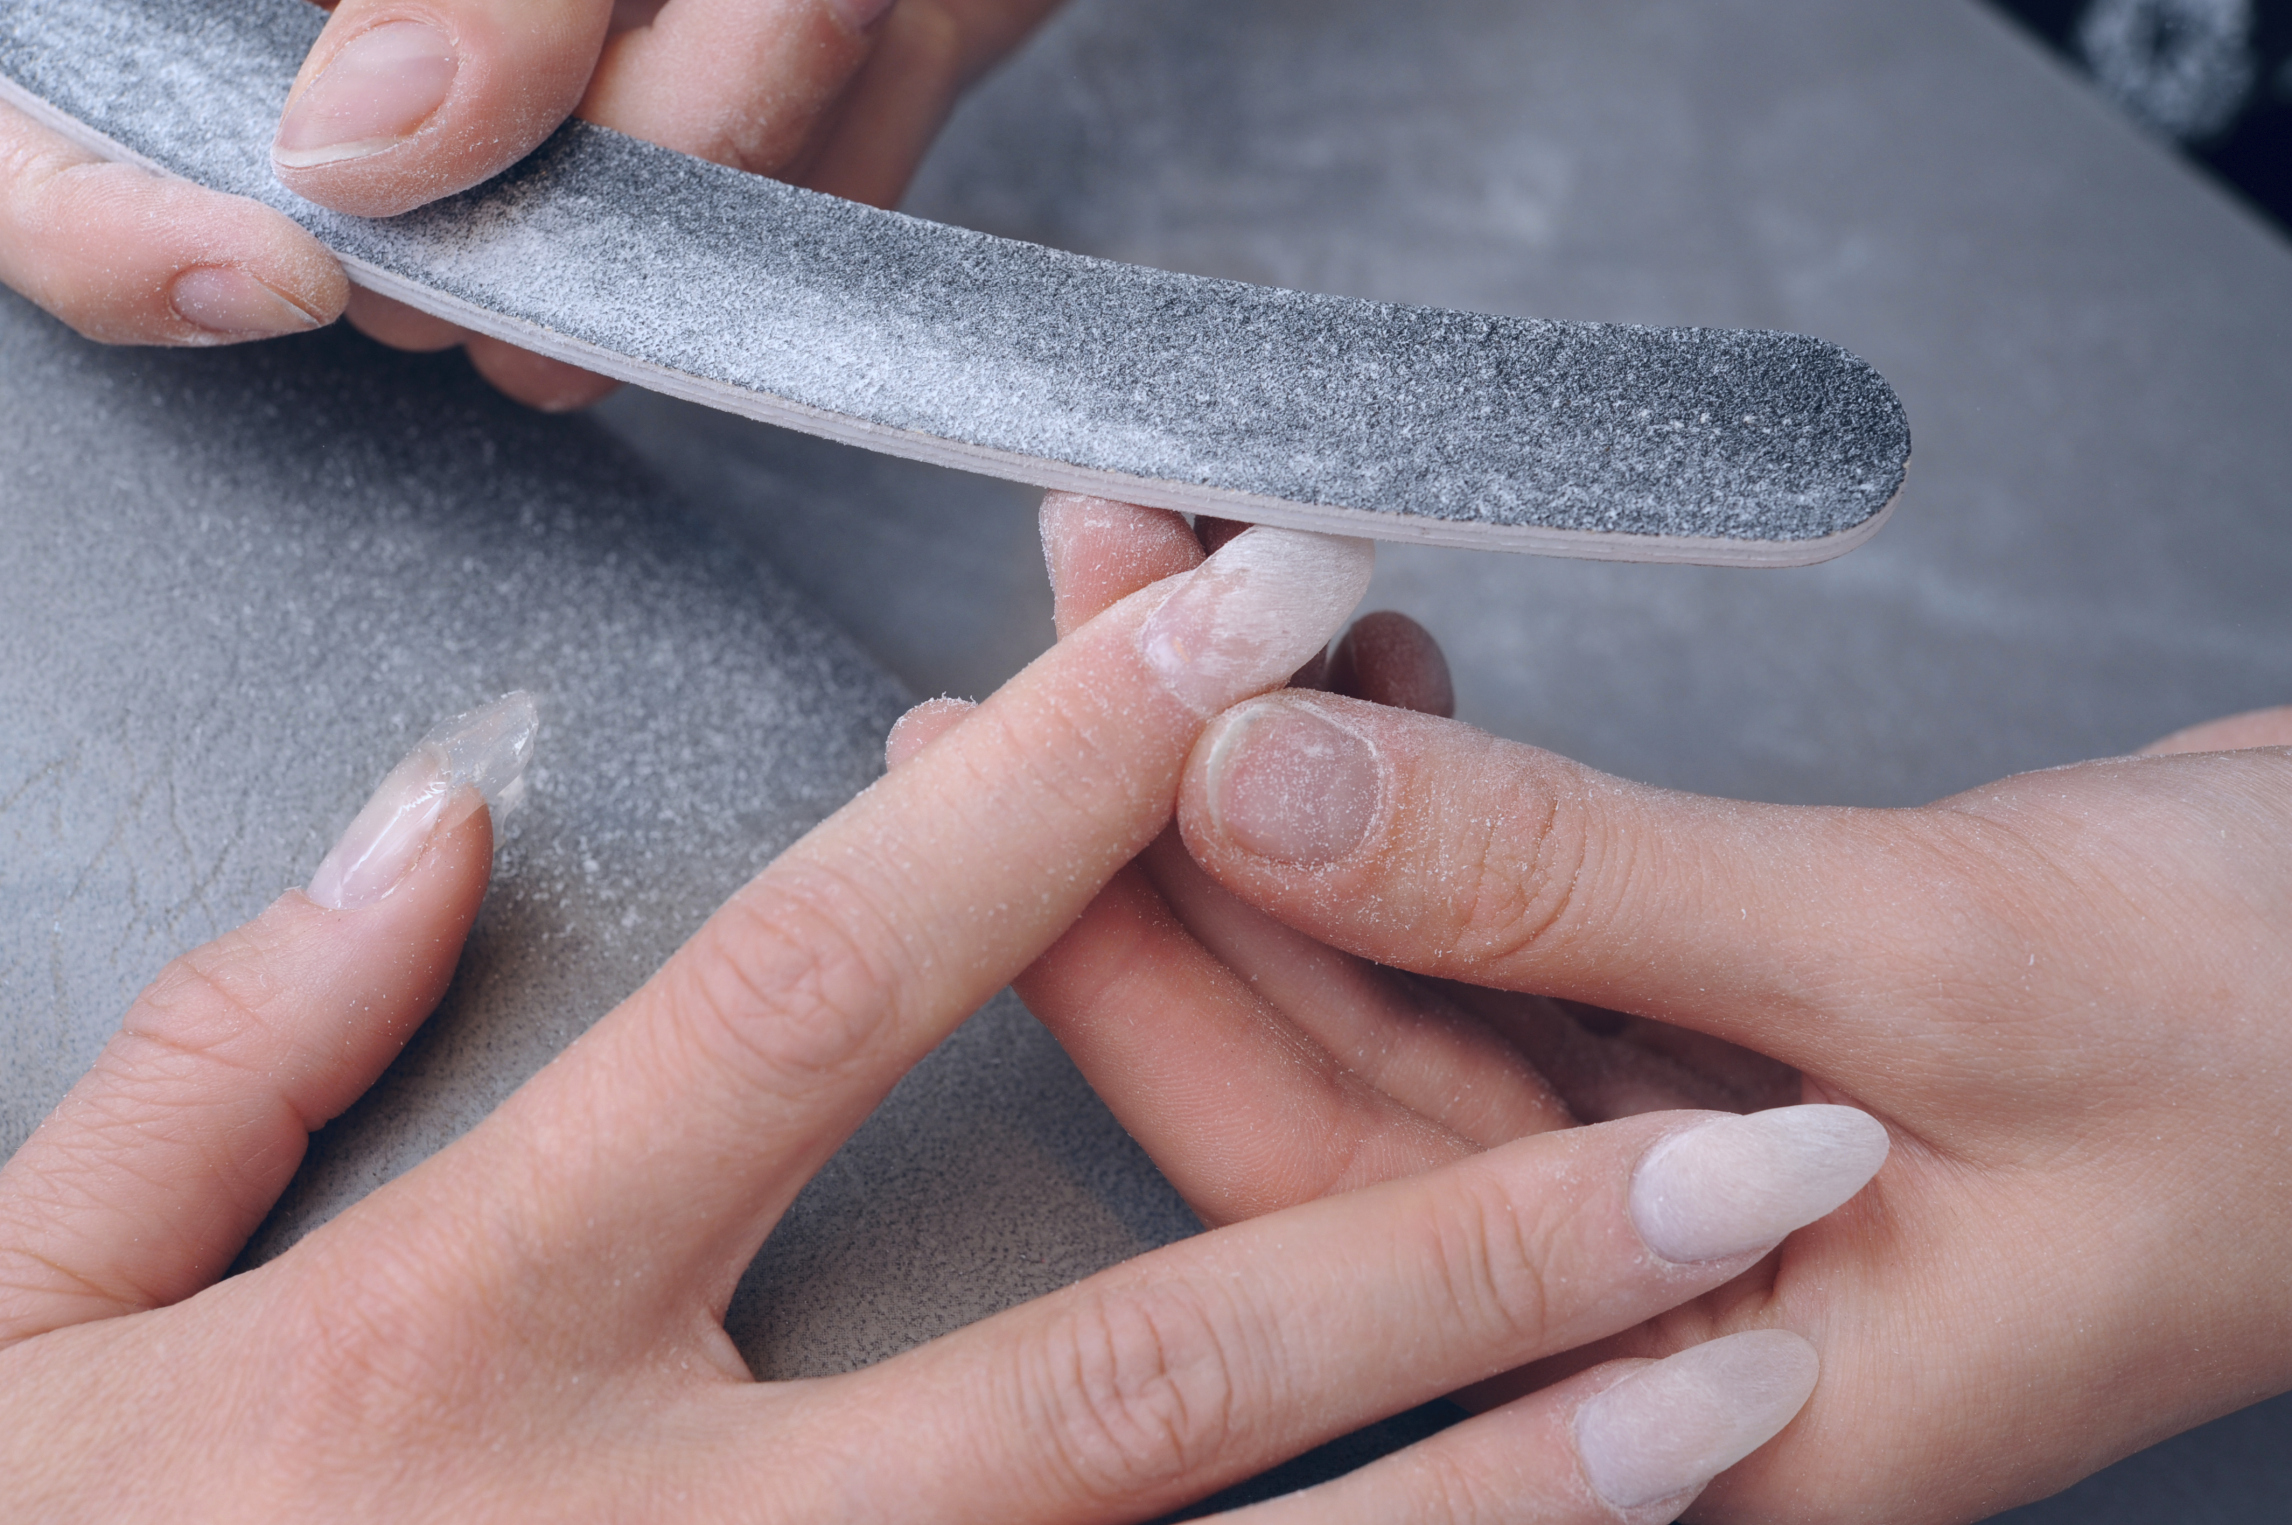 How to Apply Acrylic Over Polished Nails